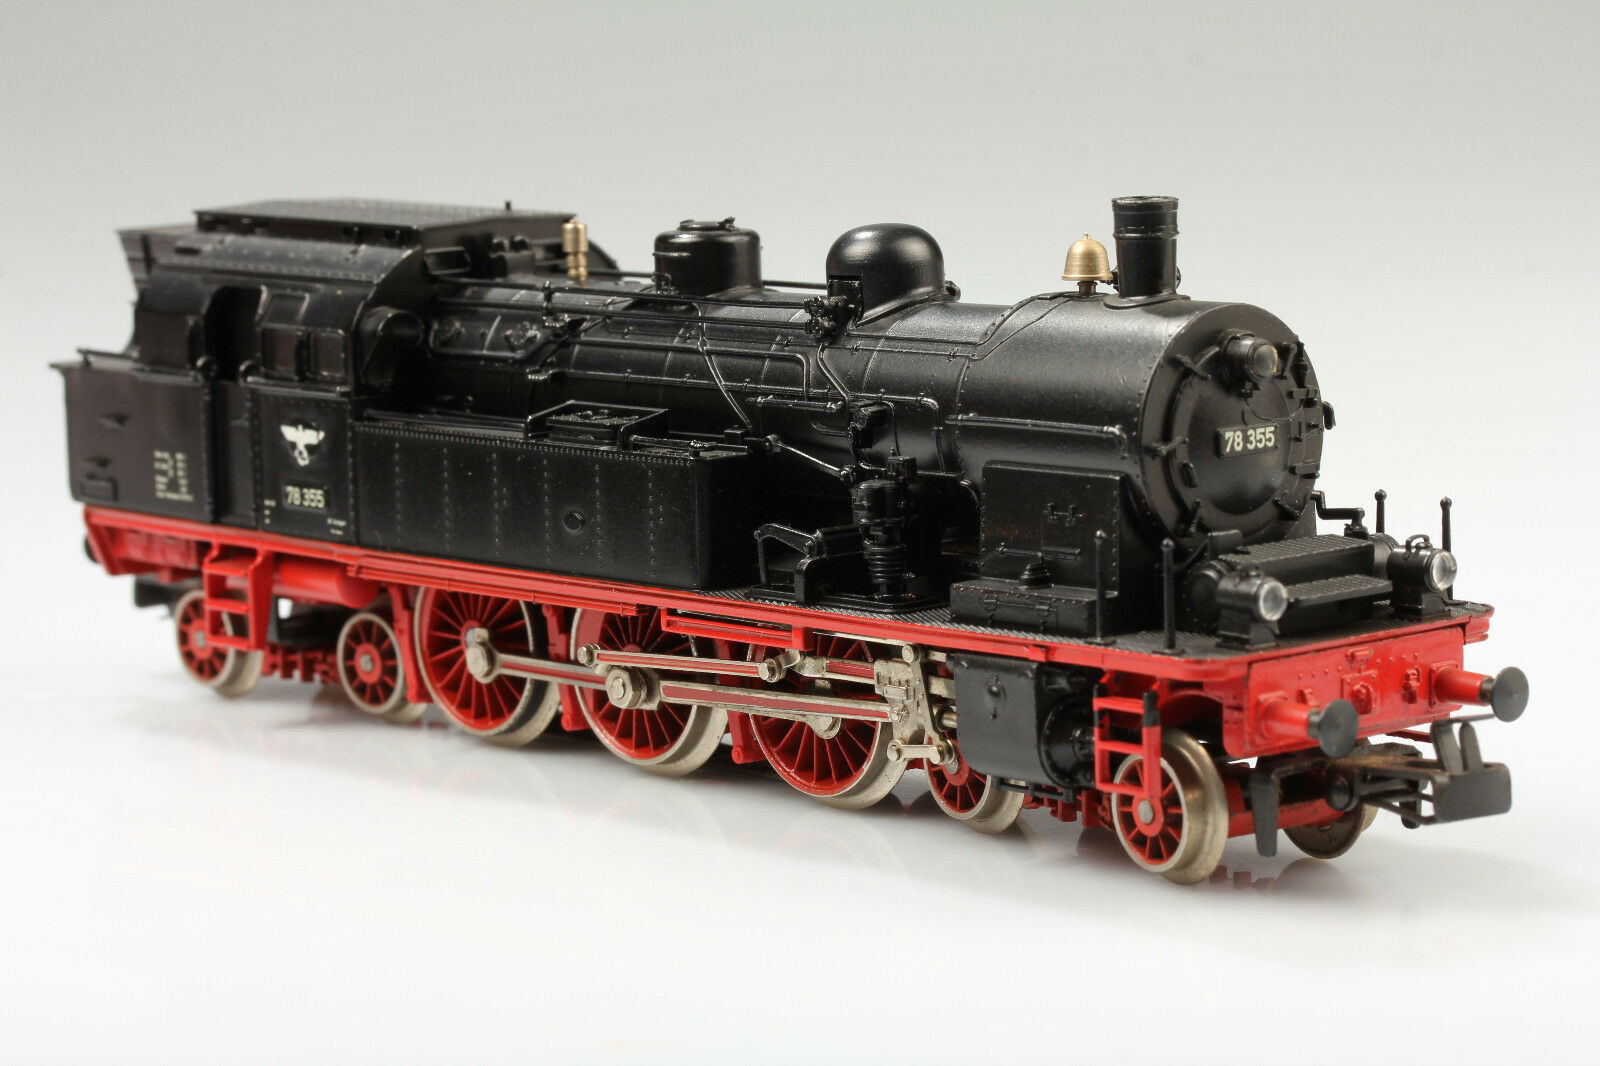 Märklin h0 Steam Locomotive BR 78 355 läuft & schaltet & Licht OK